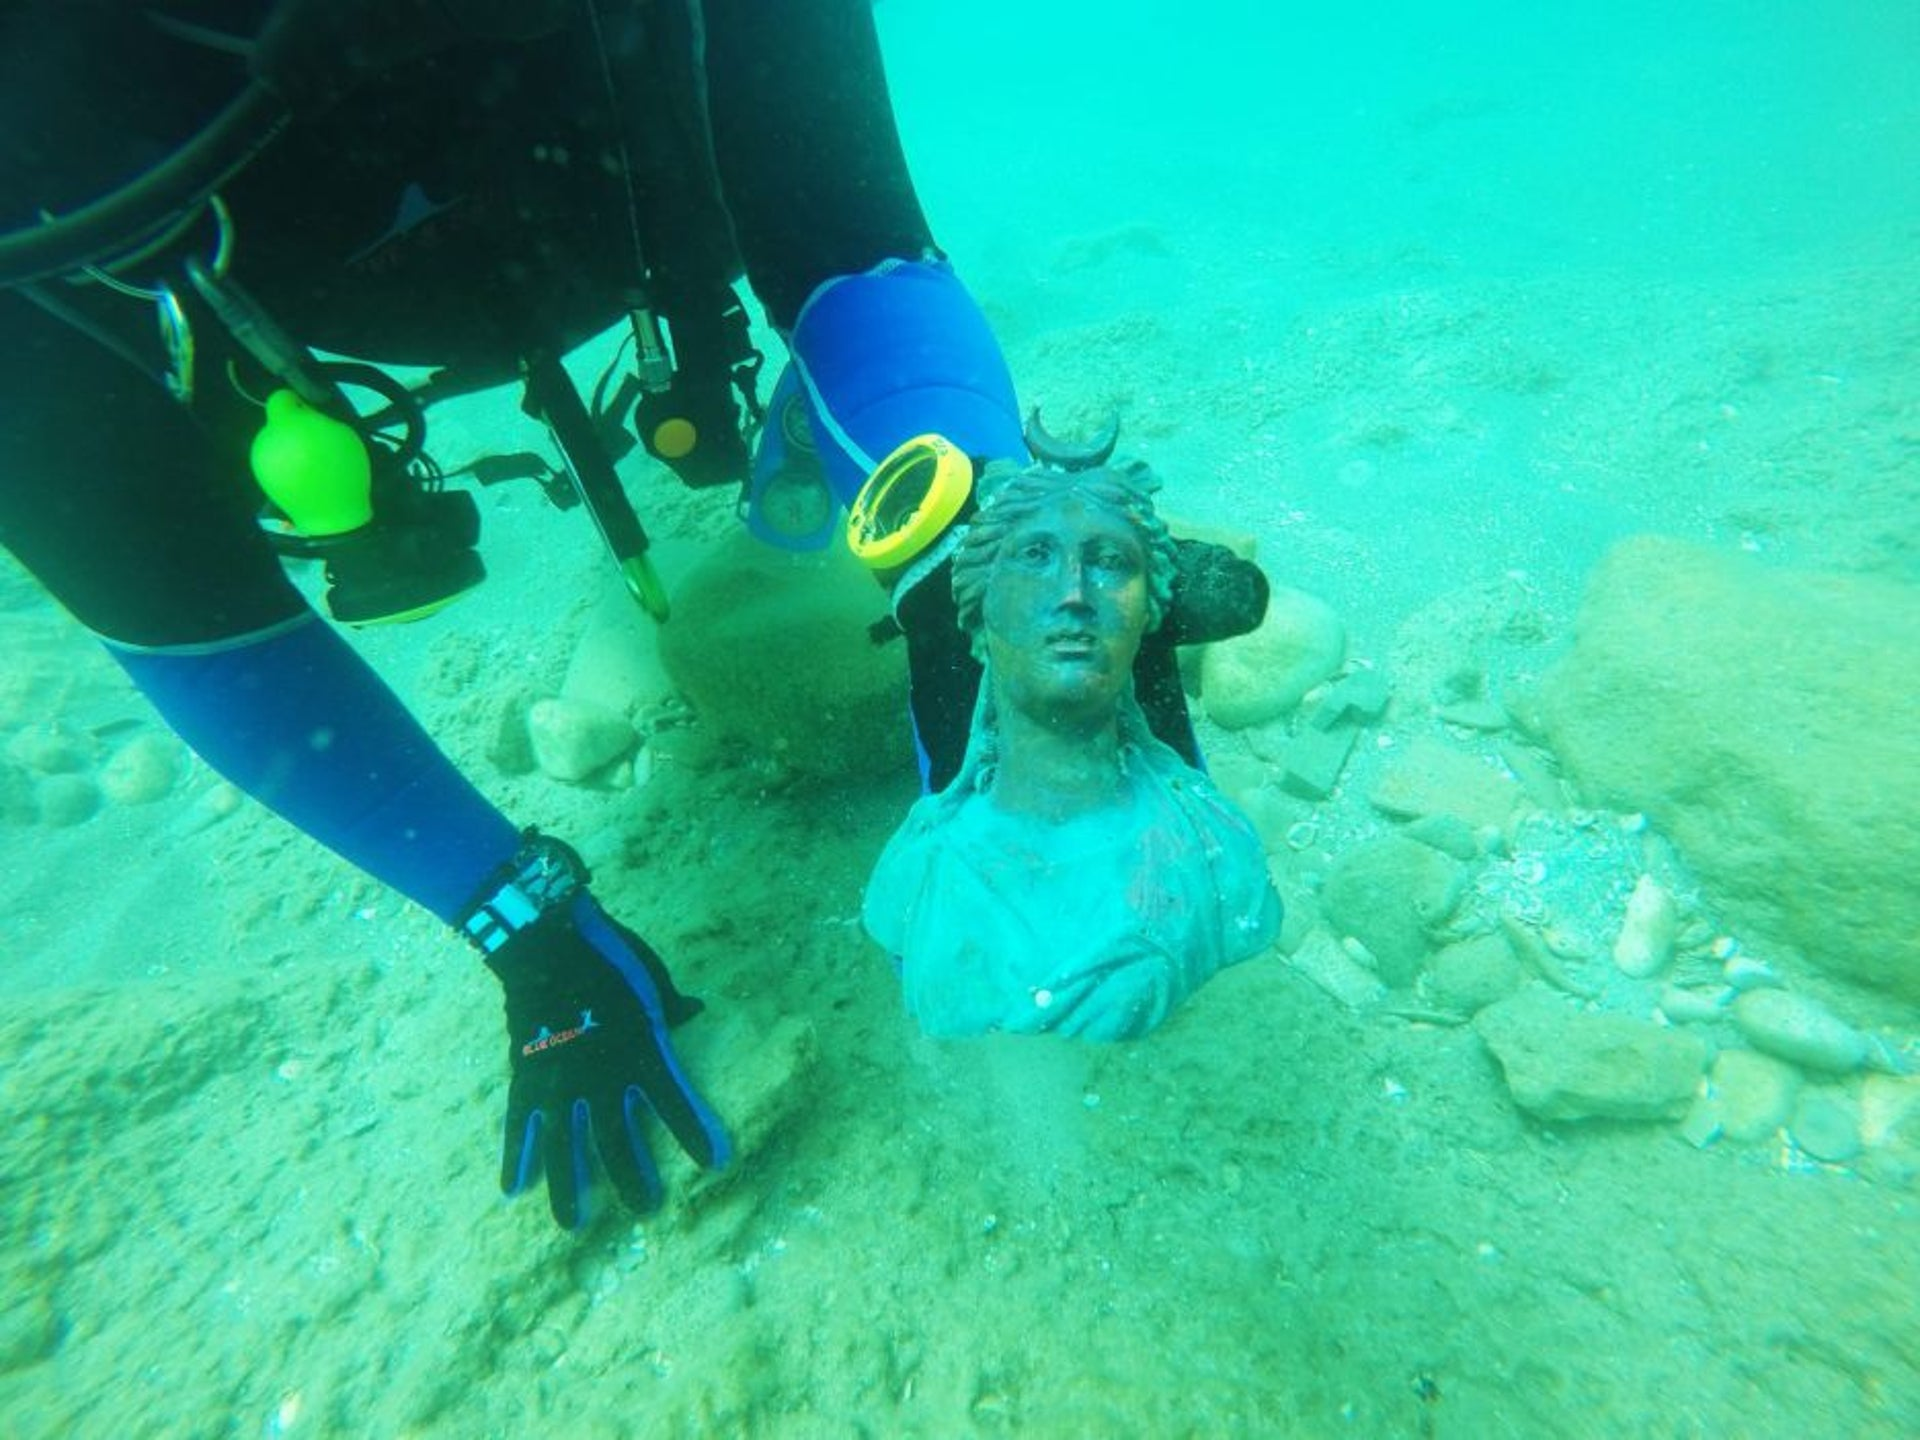 A diver removing a bronze sculpture thought to be some 1,600 years old, found on the seabed of Caesarea's harbor in May, 2016.